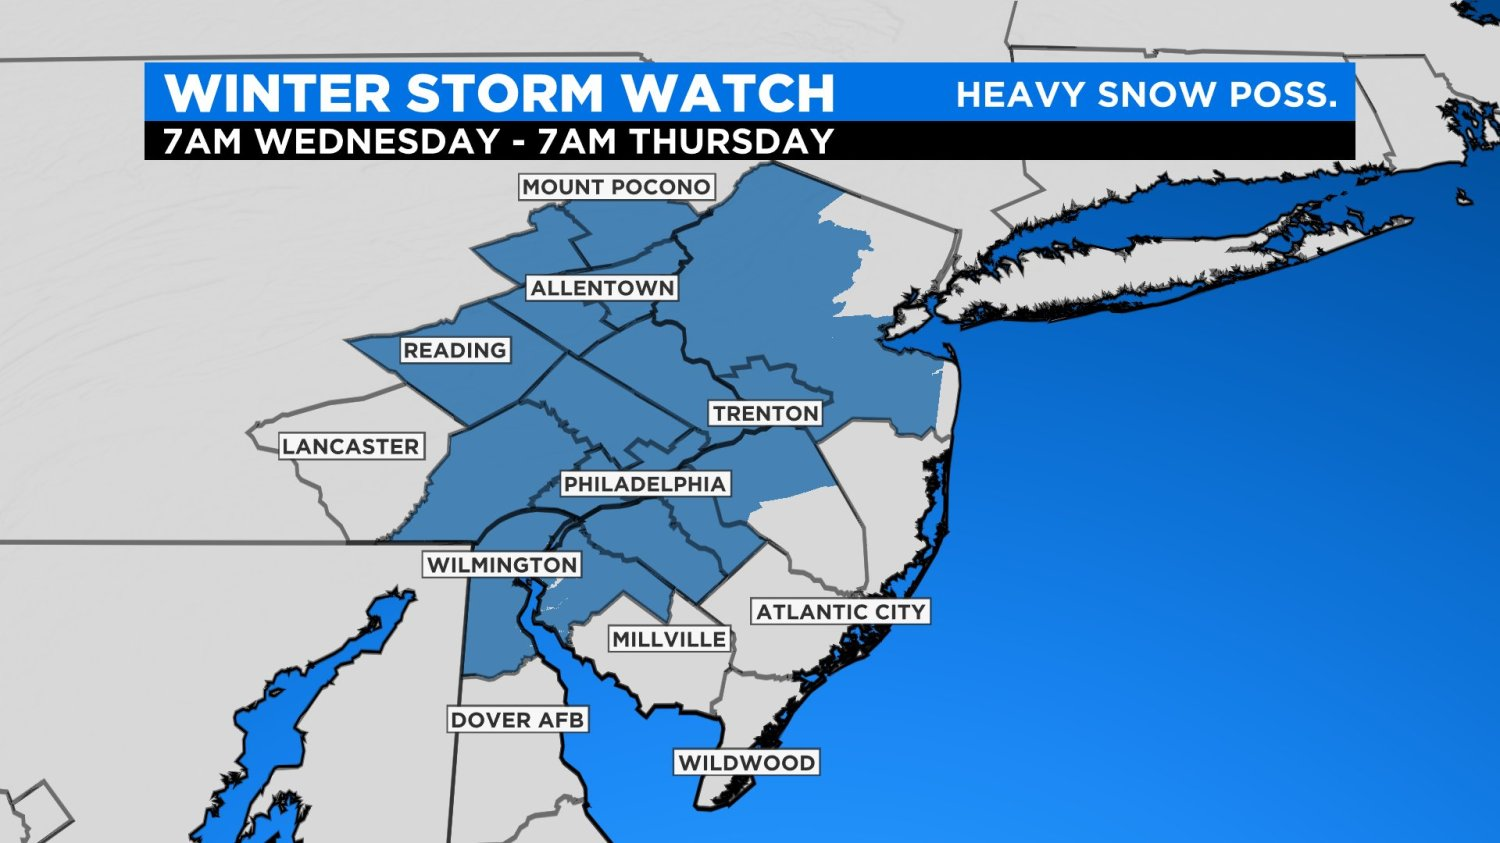 Philadelphia Weather Parts Of Region Could Possibly See 18 Inches Of Snow As Winter Storm Watch Issued For Wednesday Cbs Philly